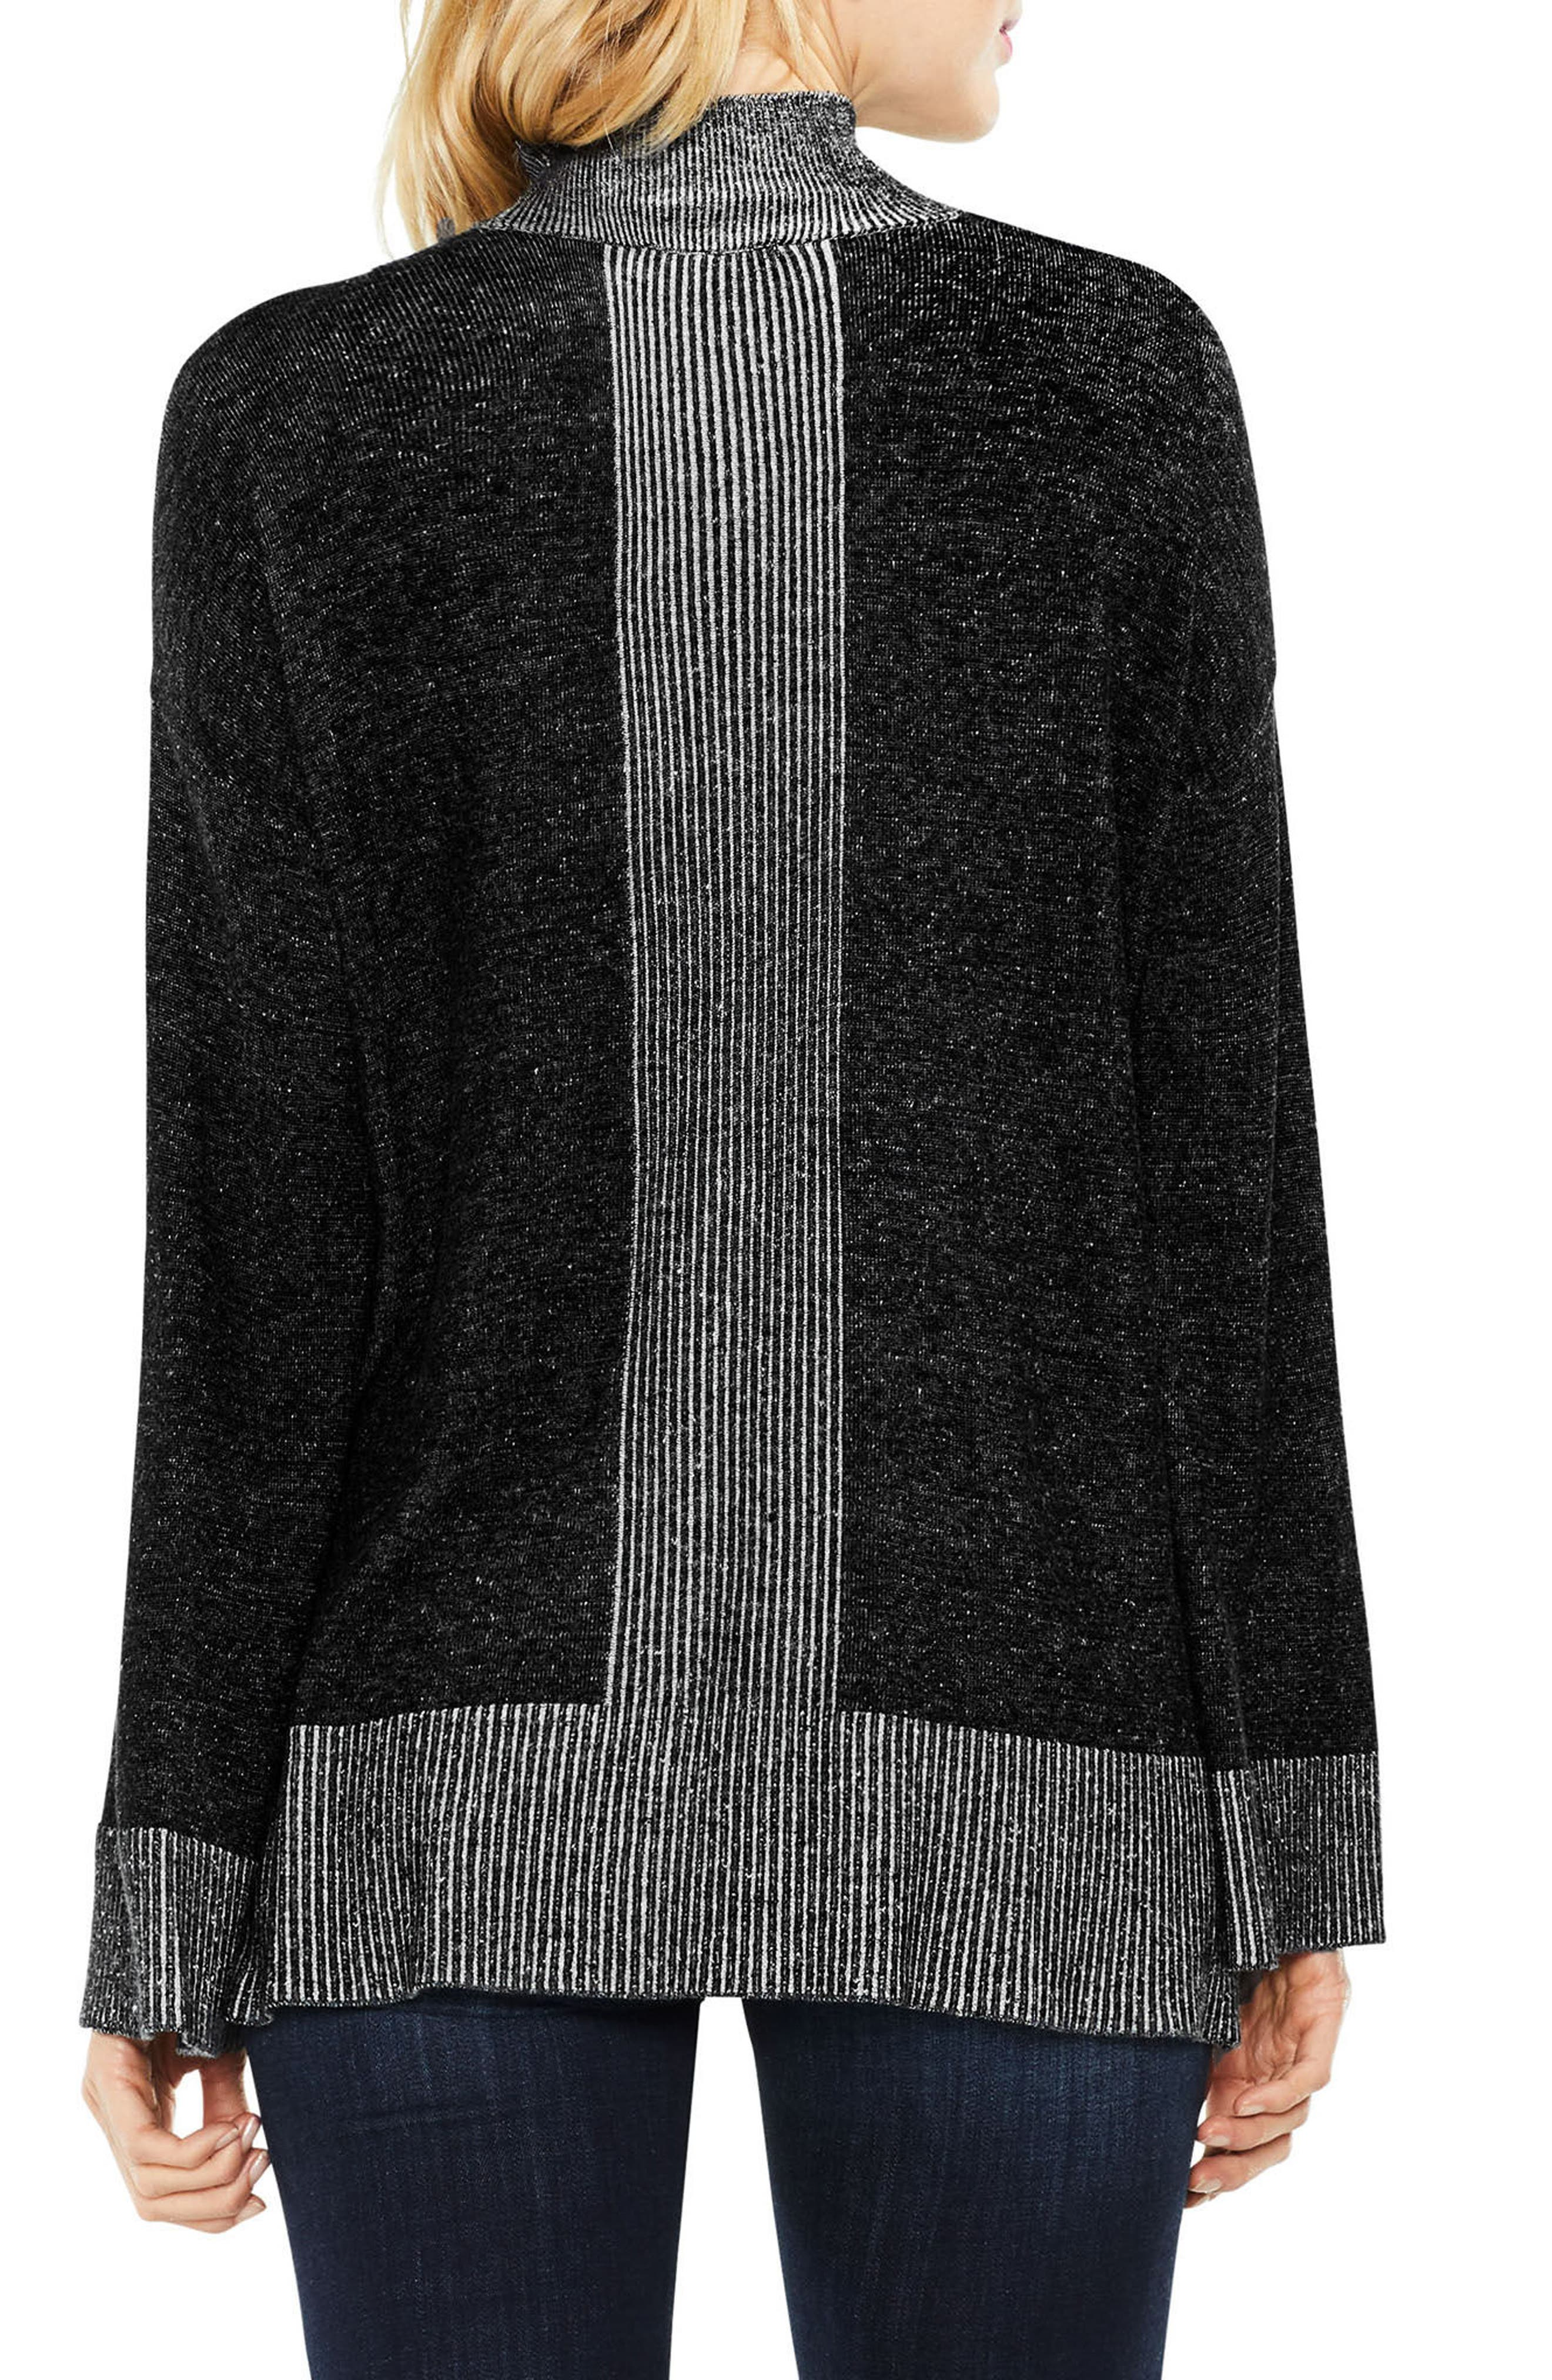 Two by Vince Camuto Ribbed Contrast Sweater,                             Alternate thumbnail 3, color,